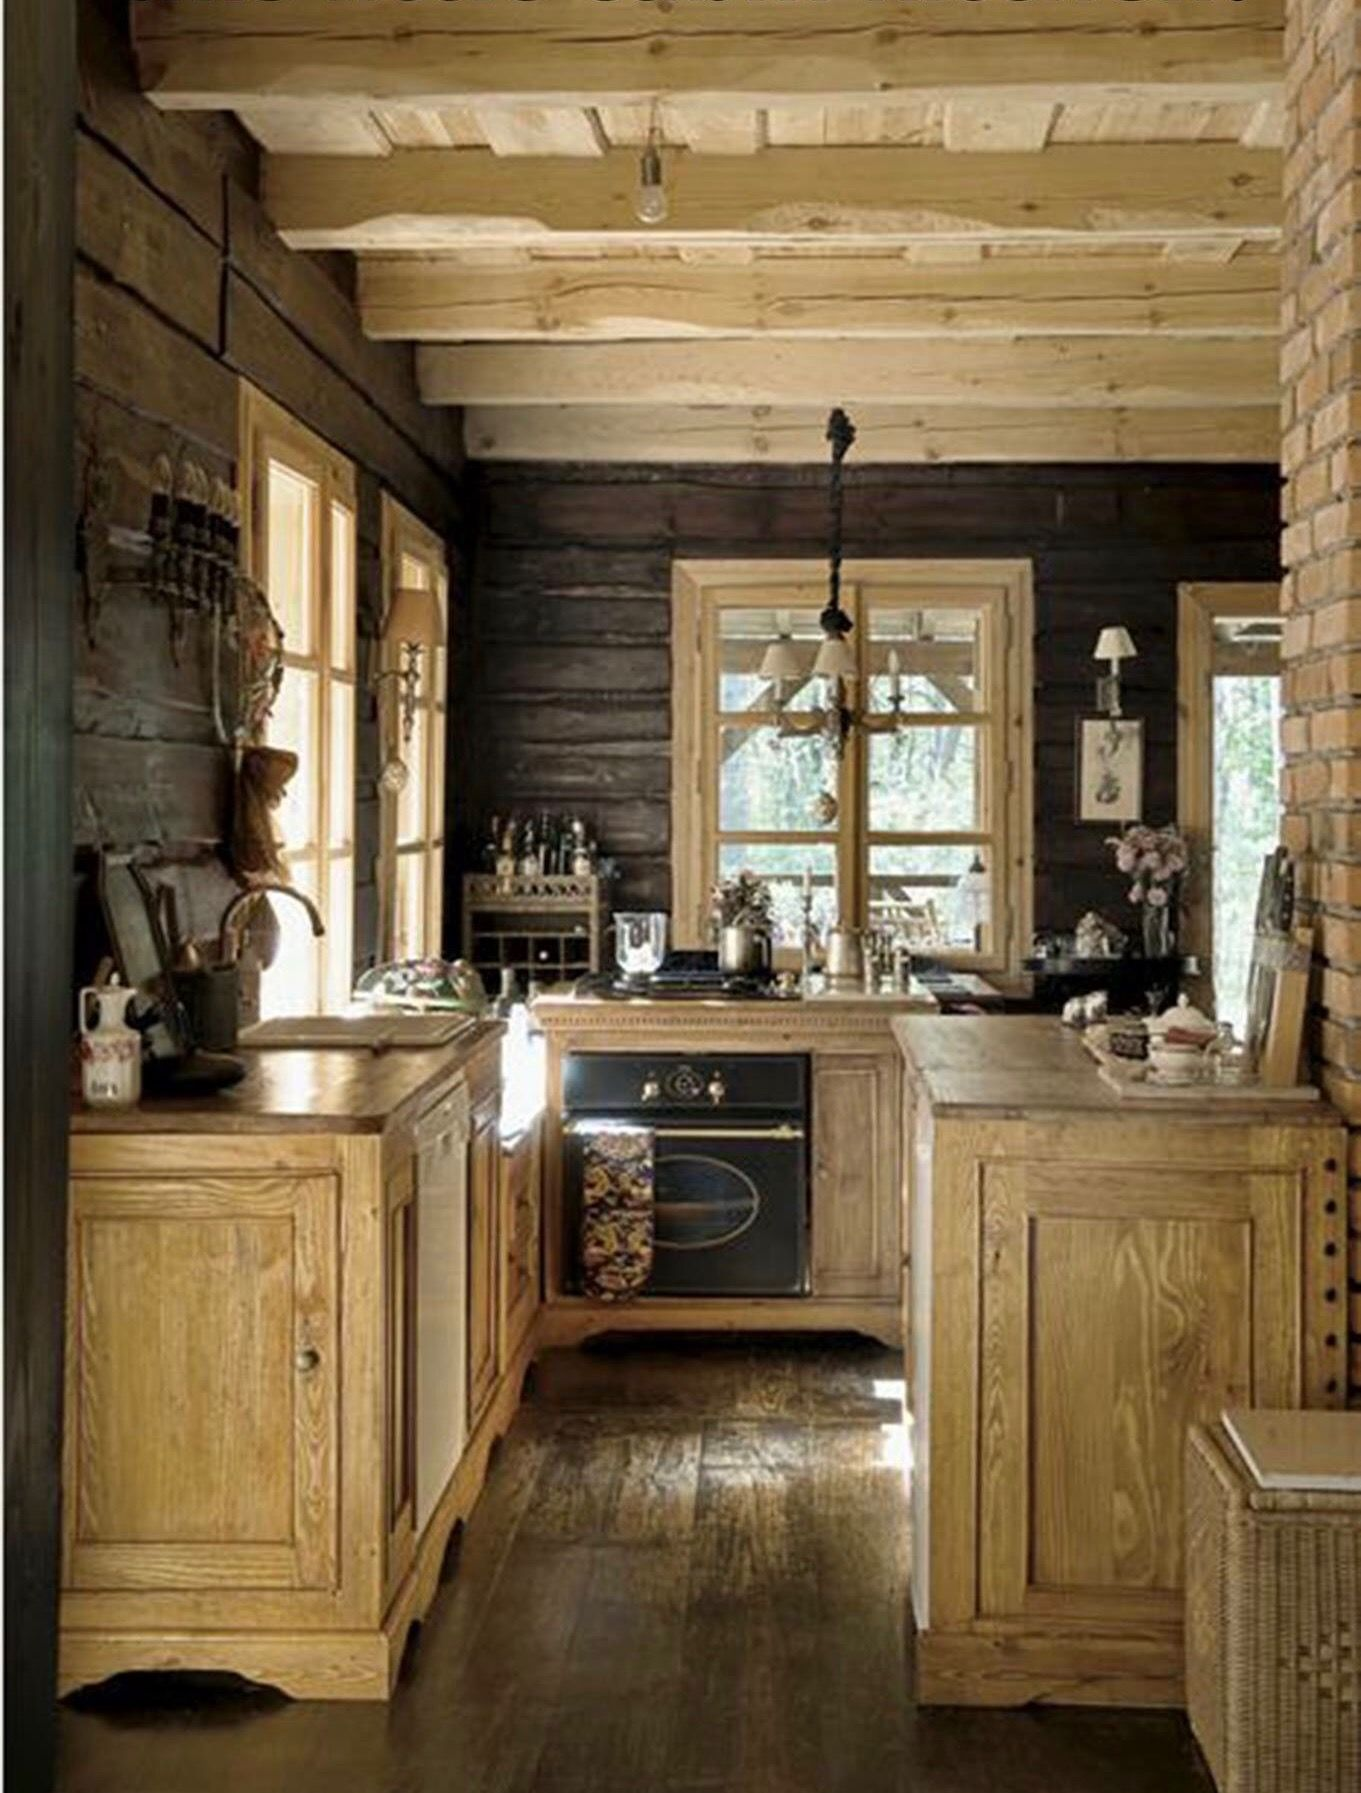 Best Kitchen Gallery: Rustic Retreat Small Rustic Cabin Kitchen Log Homes Pinterest of Small Rustic Kitchens on rachelxblog.com